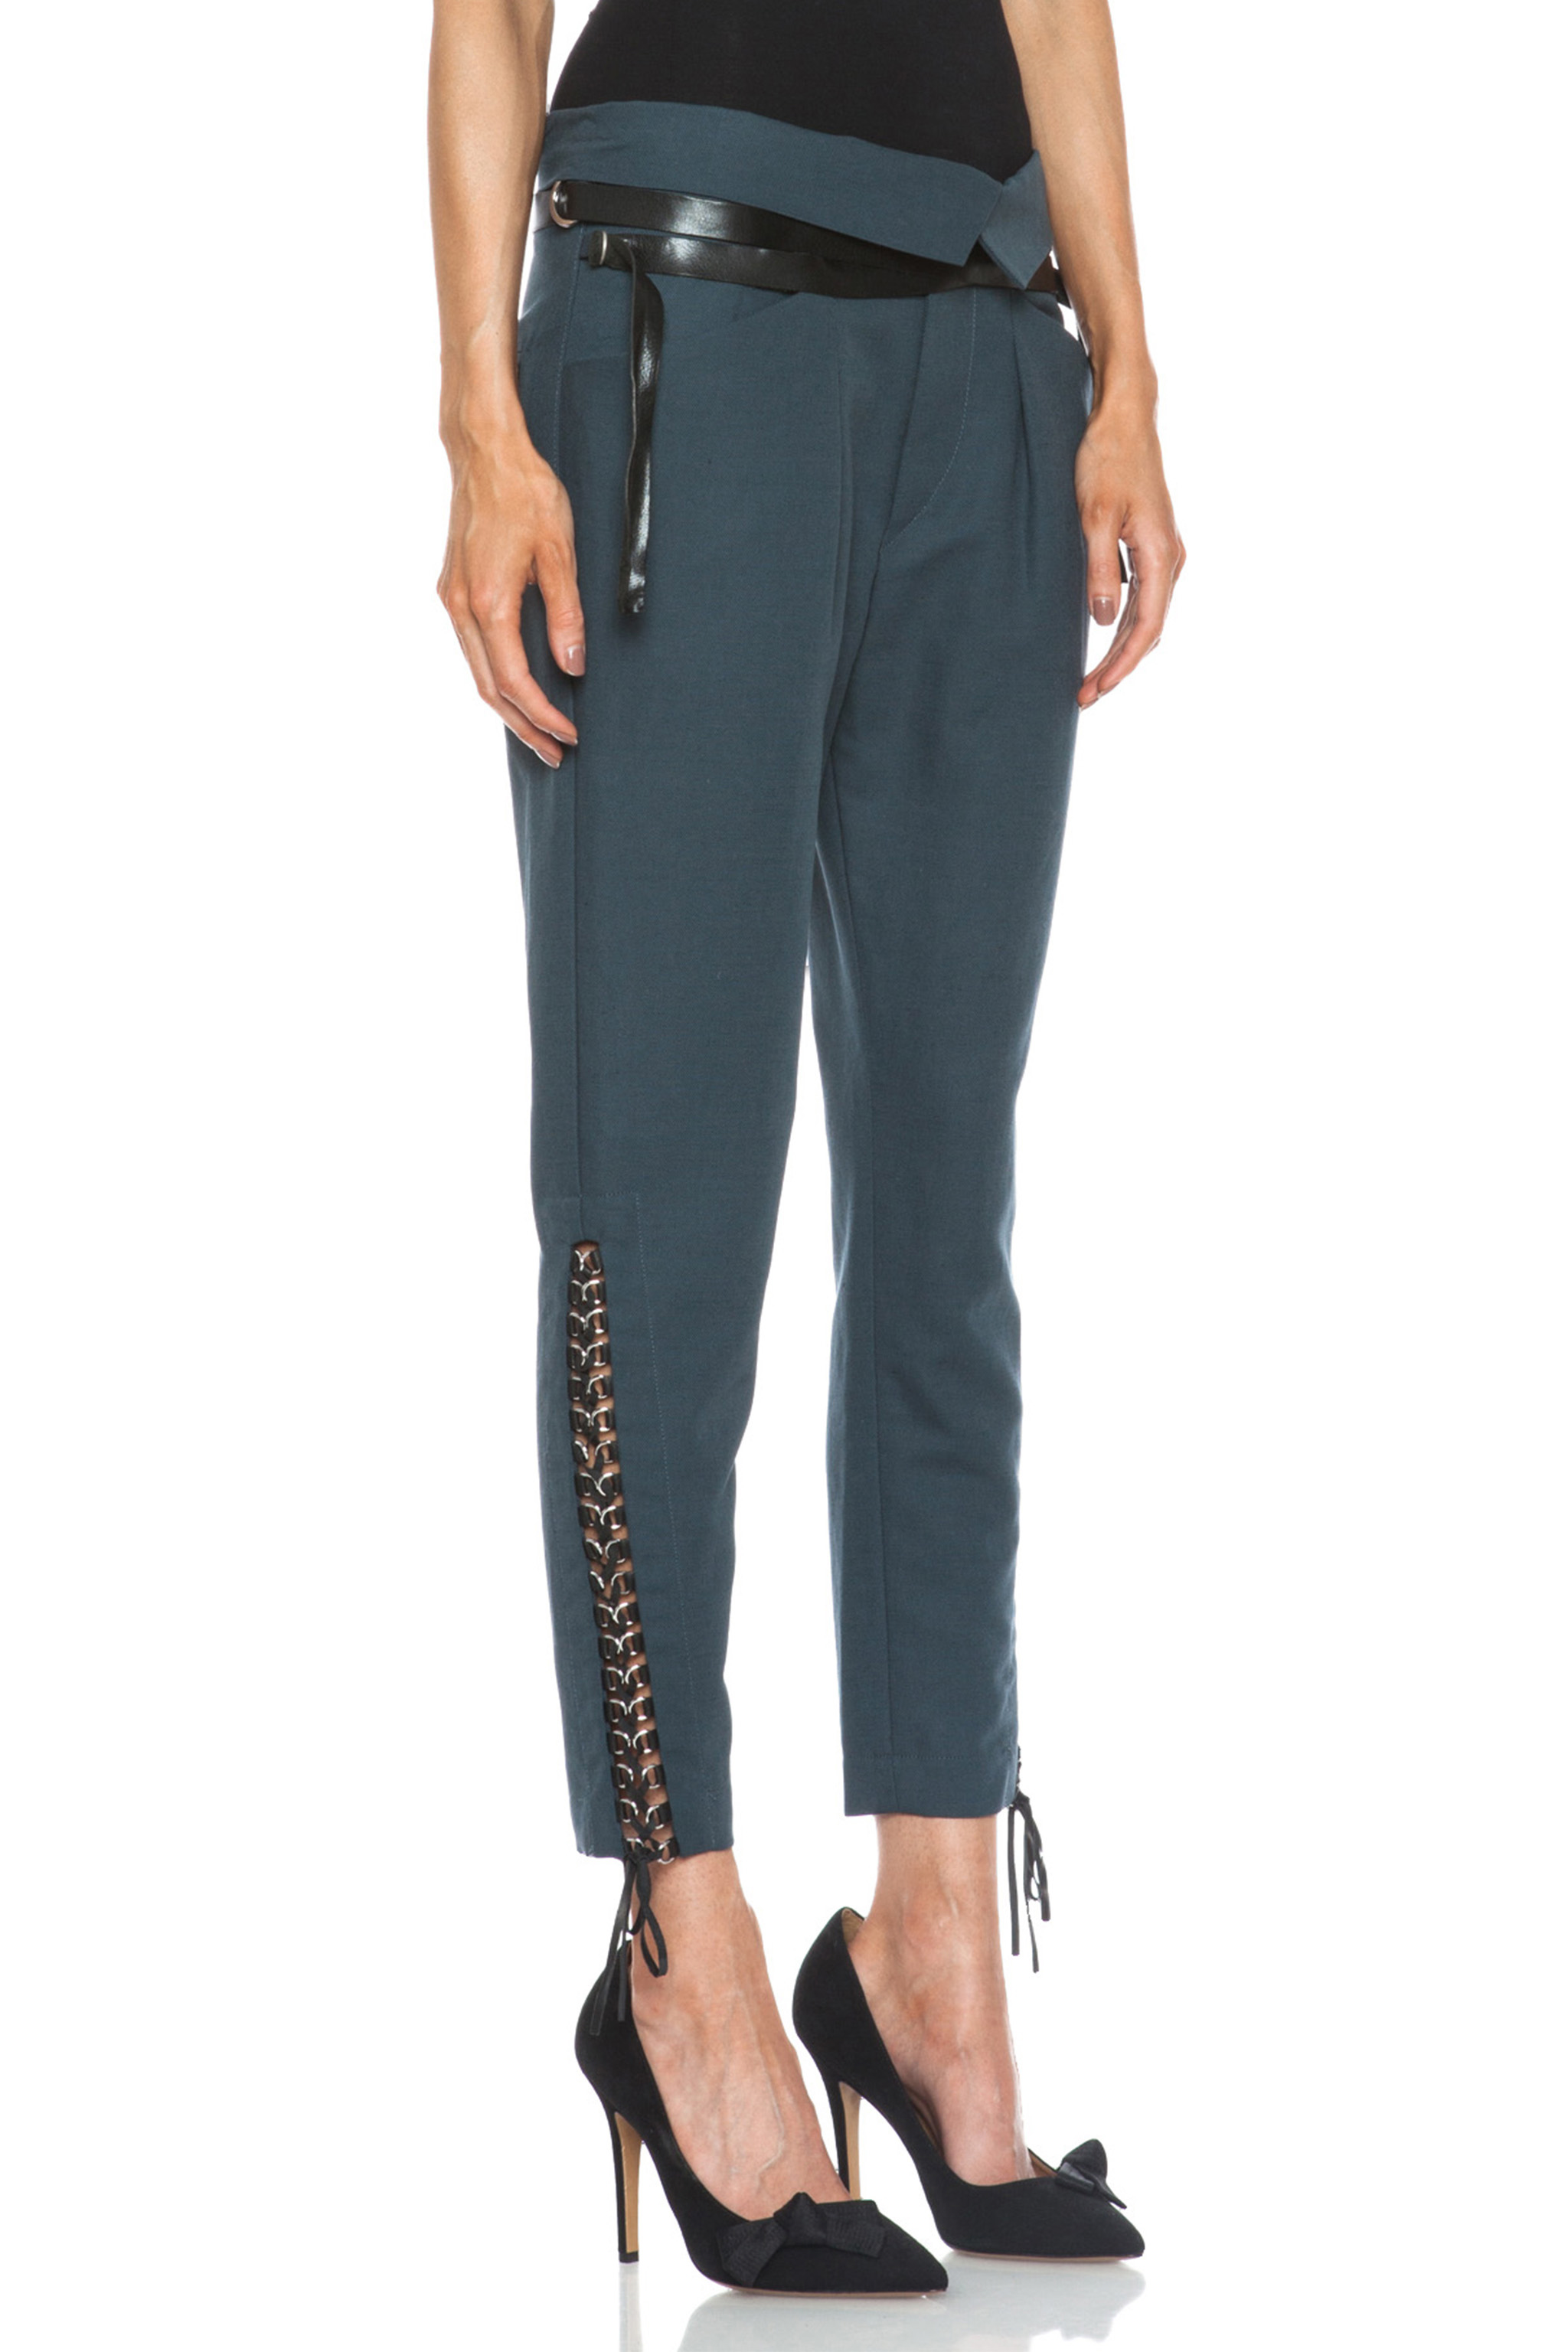 Isabel Marant | Den Linen-Blend Cropped Pants in Slate Blue